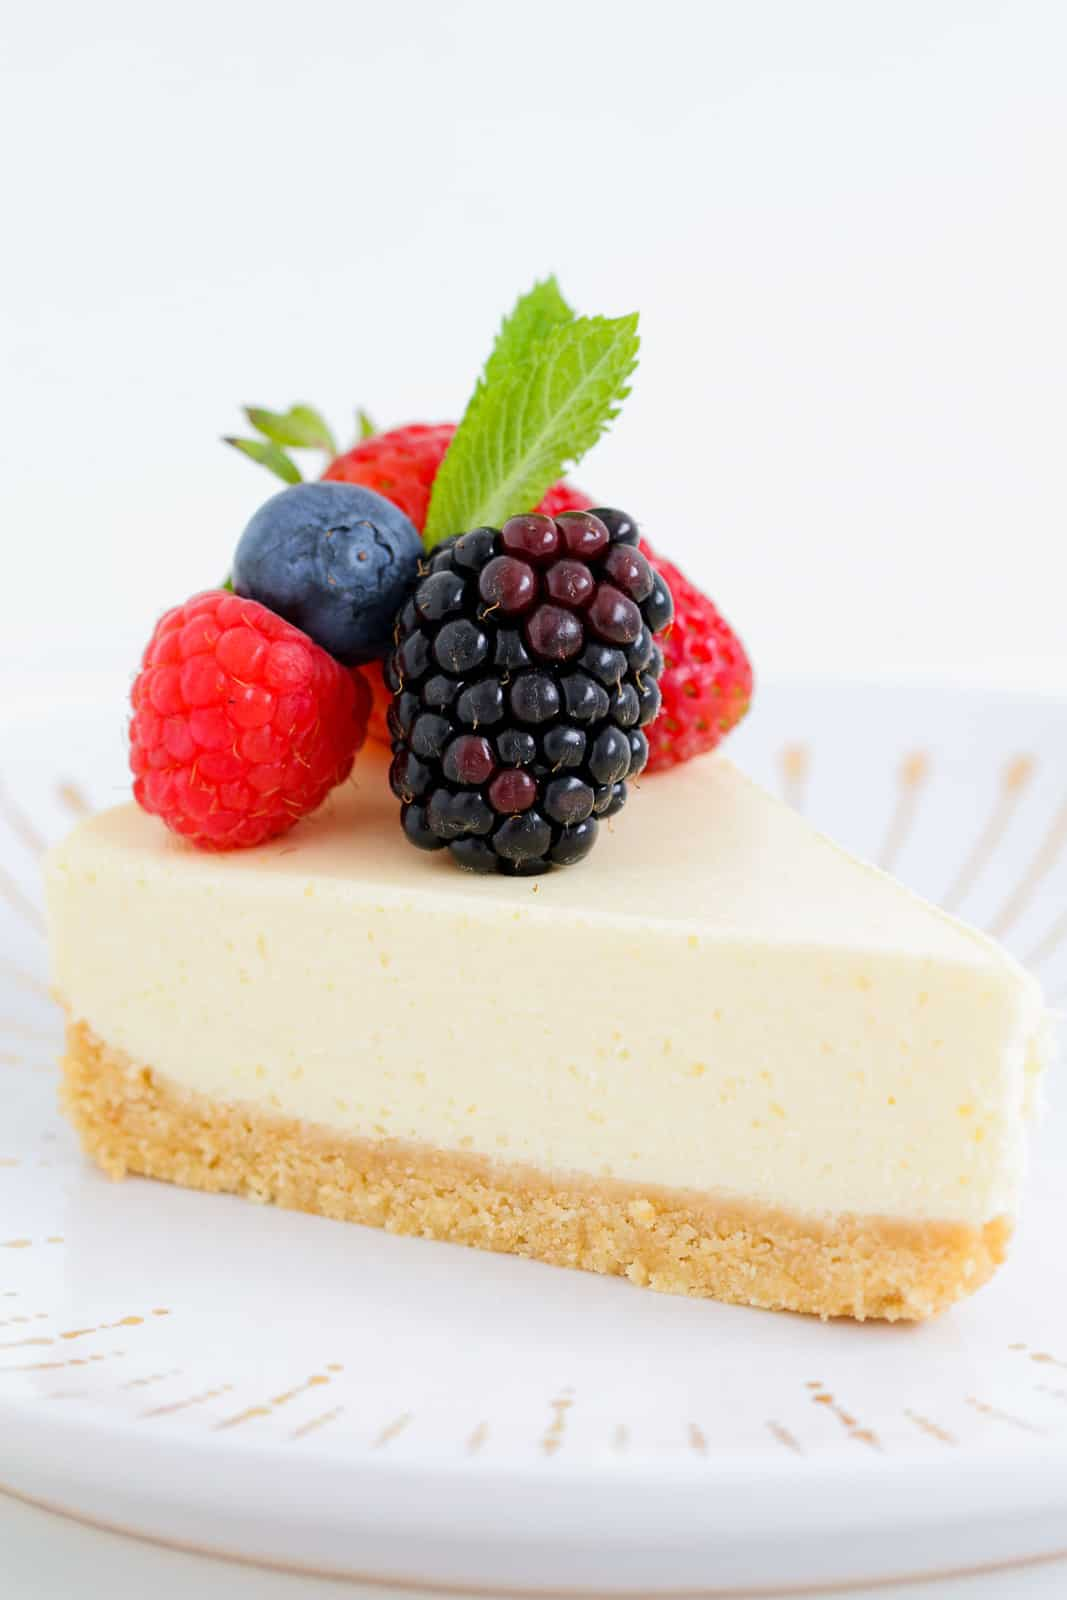 A slice of lemon cheesecake on a white plate with berries.